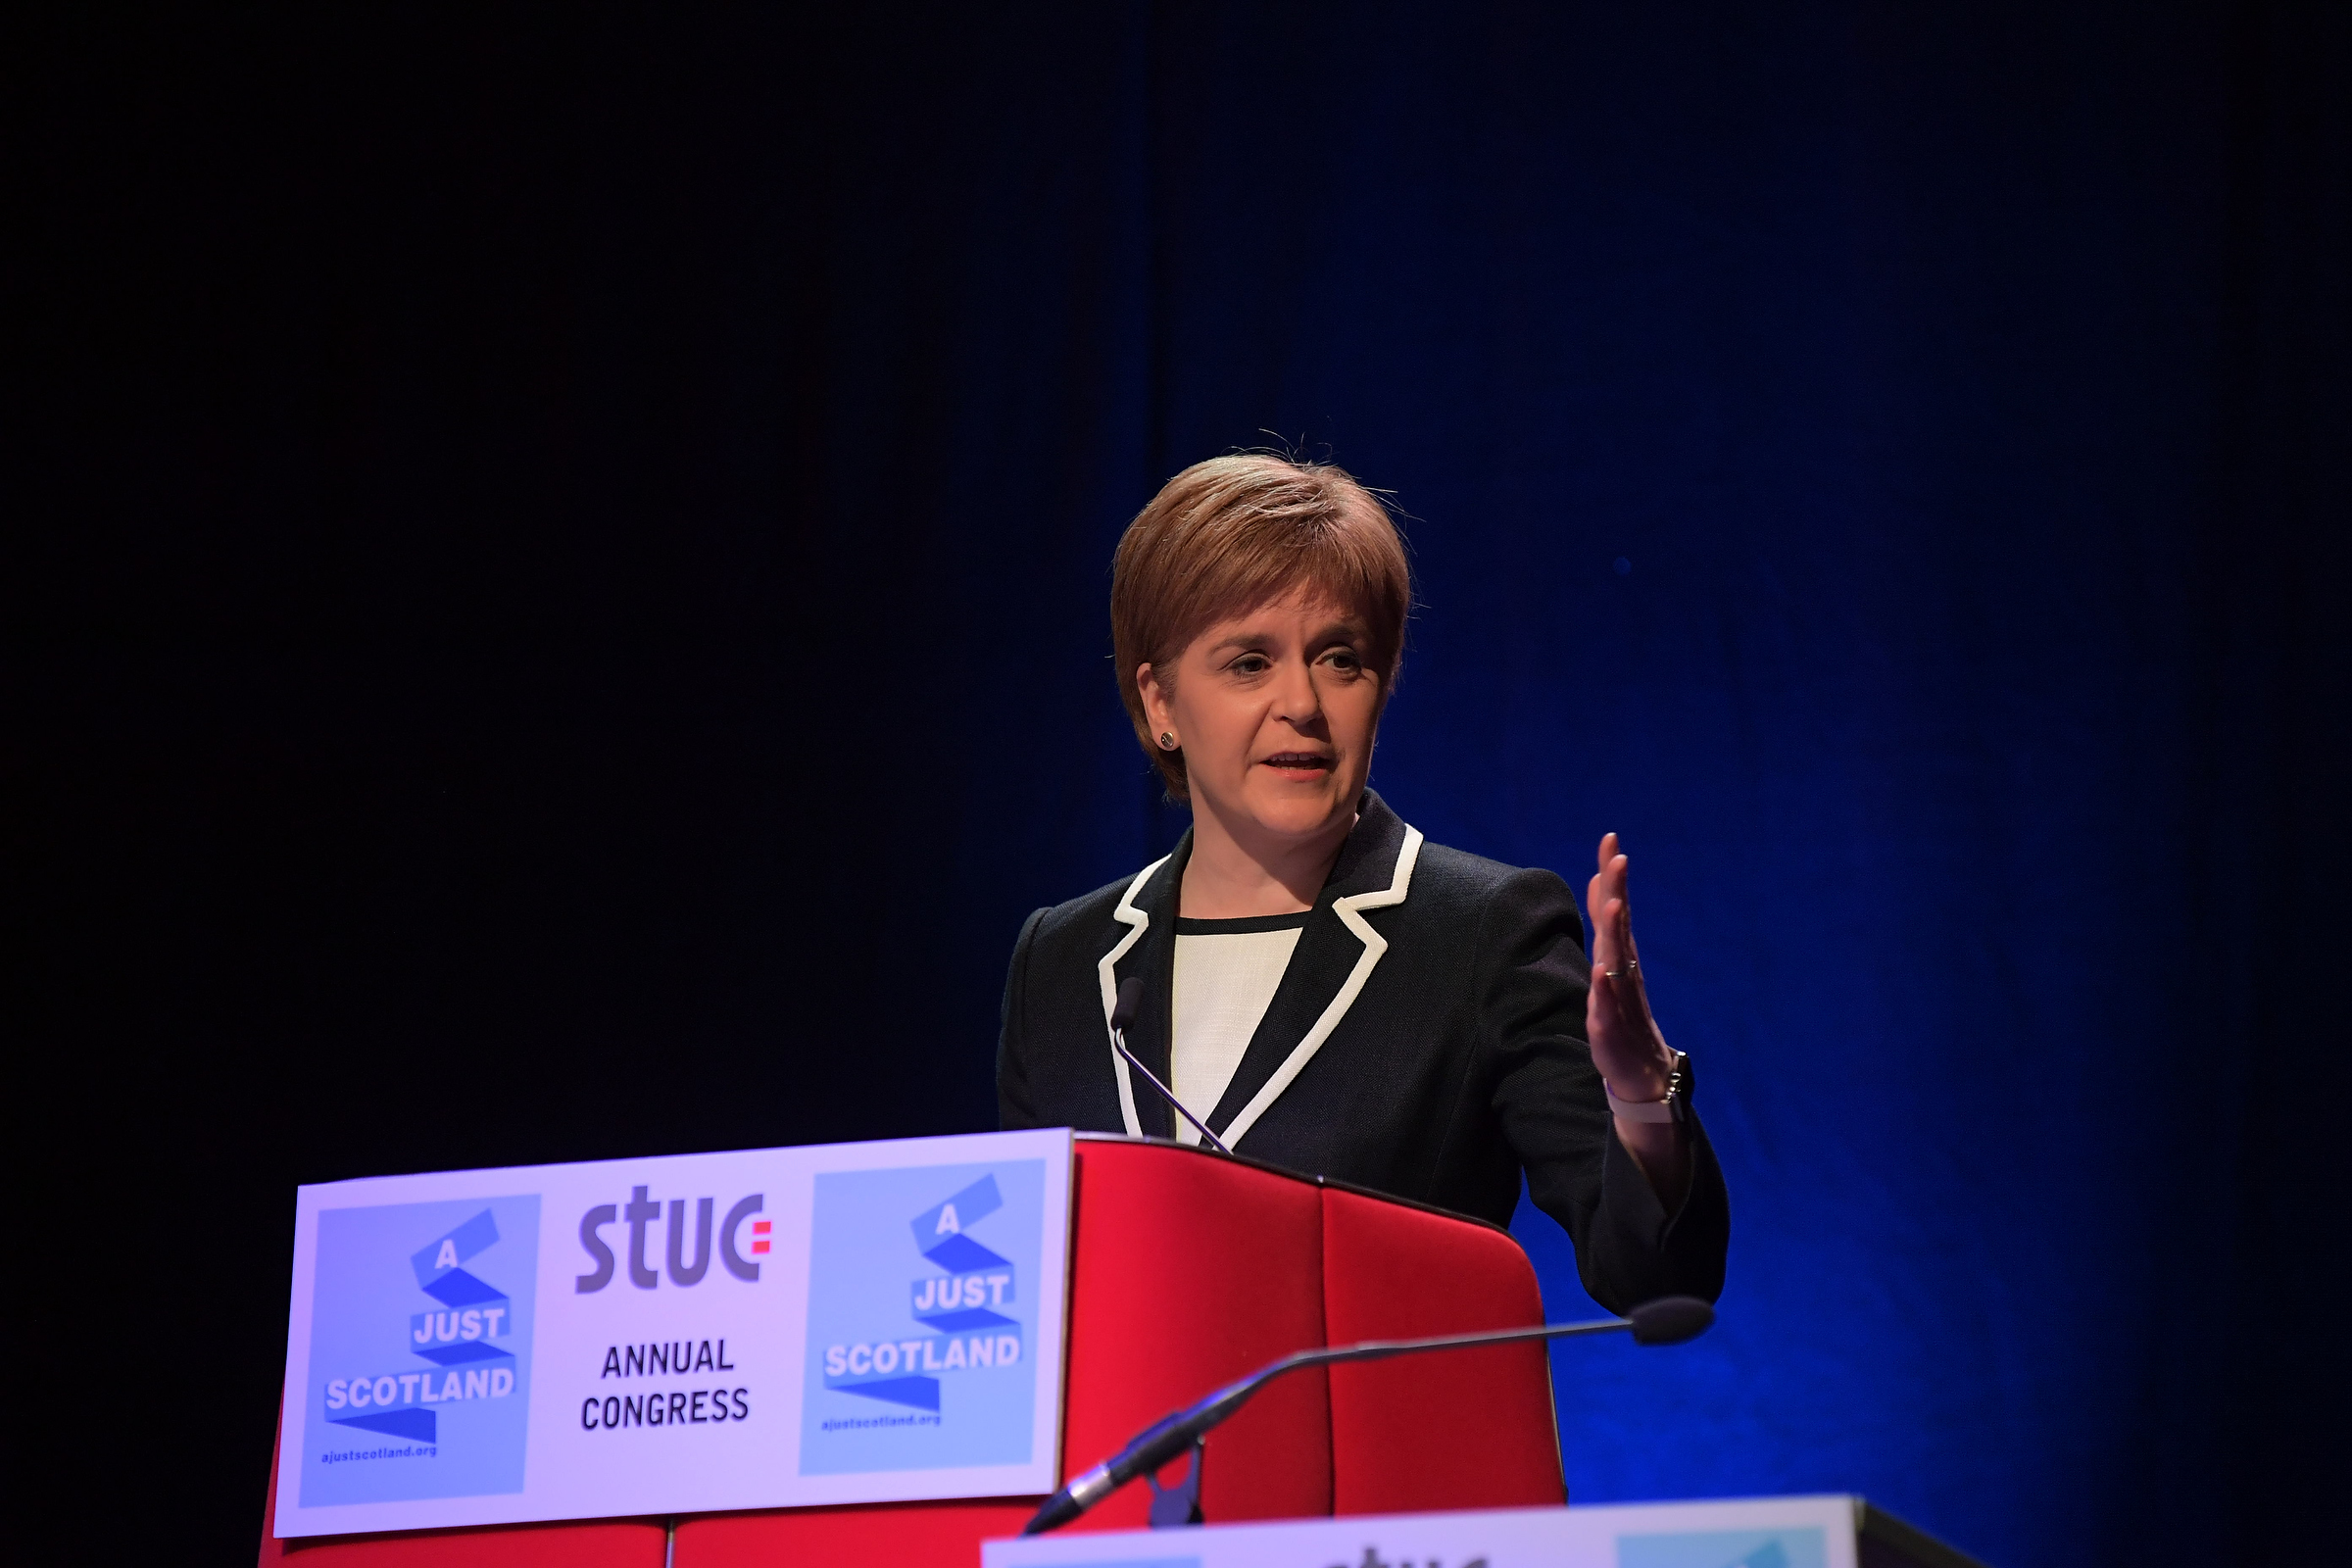 Nicola Sturgeon speaking at the STUC congress at the Caird Hall in Dundee.